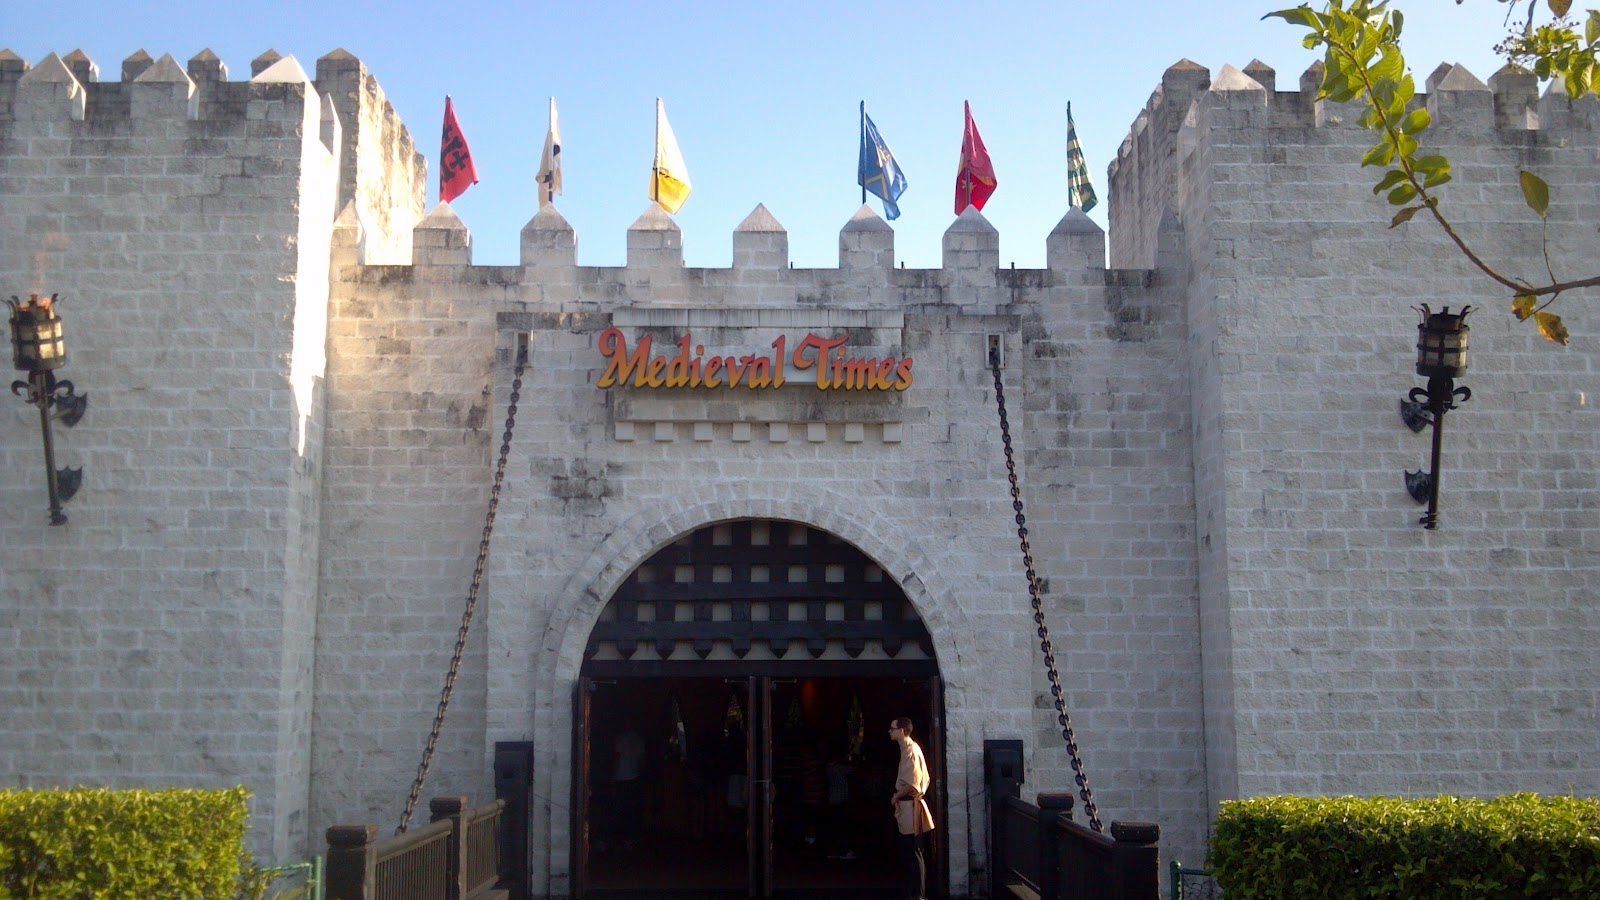 Orlando Dinner Shows – Medieval Times & Pirate's Dinner Adventure. BY MIKE WARING – JUNE As I promised previously in Part 1, we did go back and review the last two big non-Disney dinner shows in Orlando: Pirate's Dinner Adventure! (comes with an exclamation mark) and Medieval Times (sorry, no exclamation mark).. Perhaps at some future point we will do an Extreme Luau Review with.